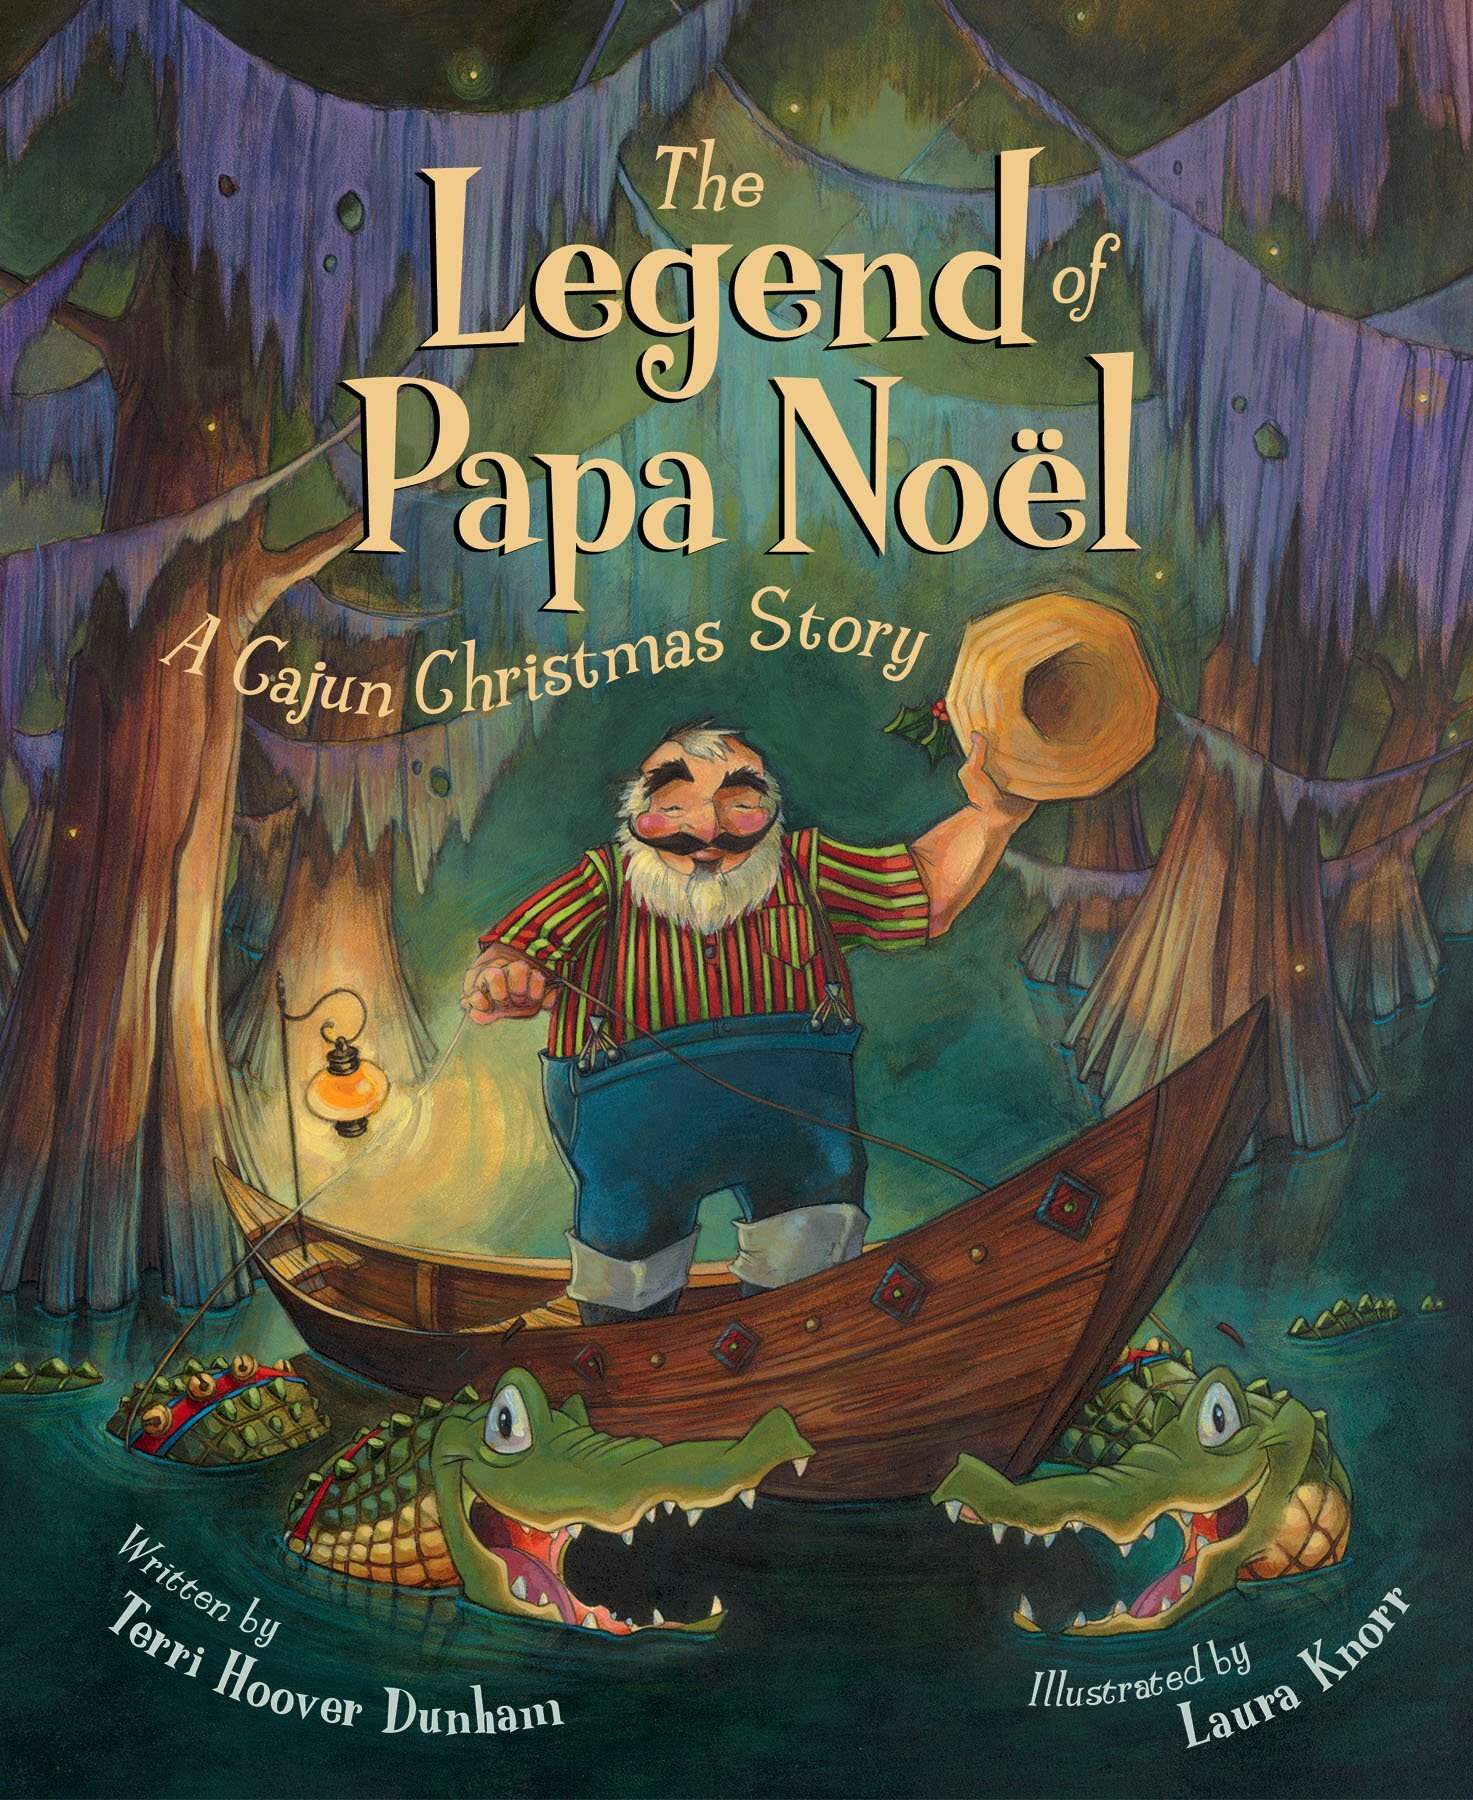 Terri Dunham - signs the Legend of Papa Noël, where Santa comes to the bayou in a fantastic Cajun Christmas story!